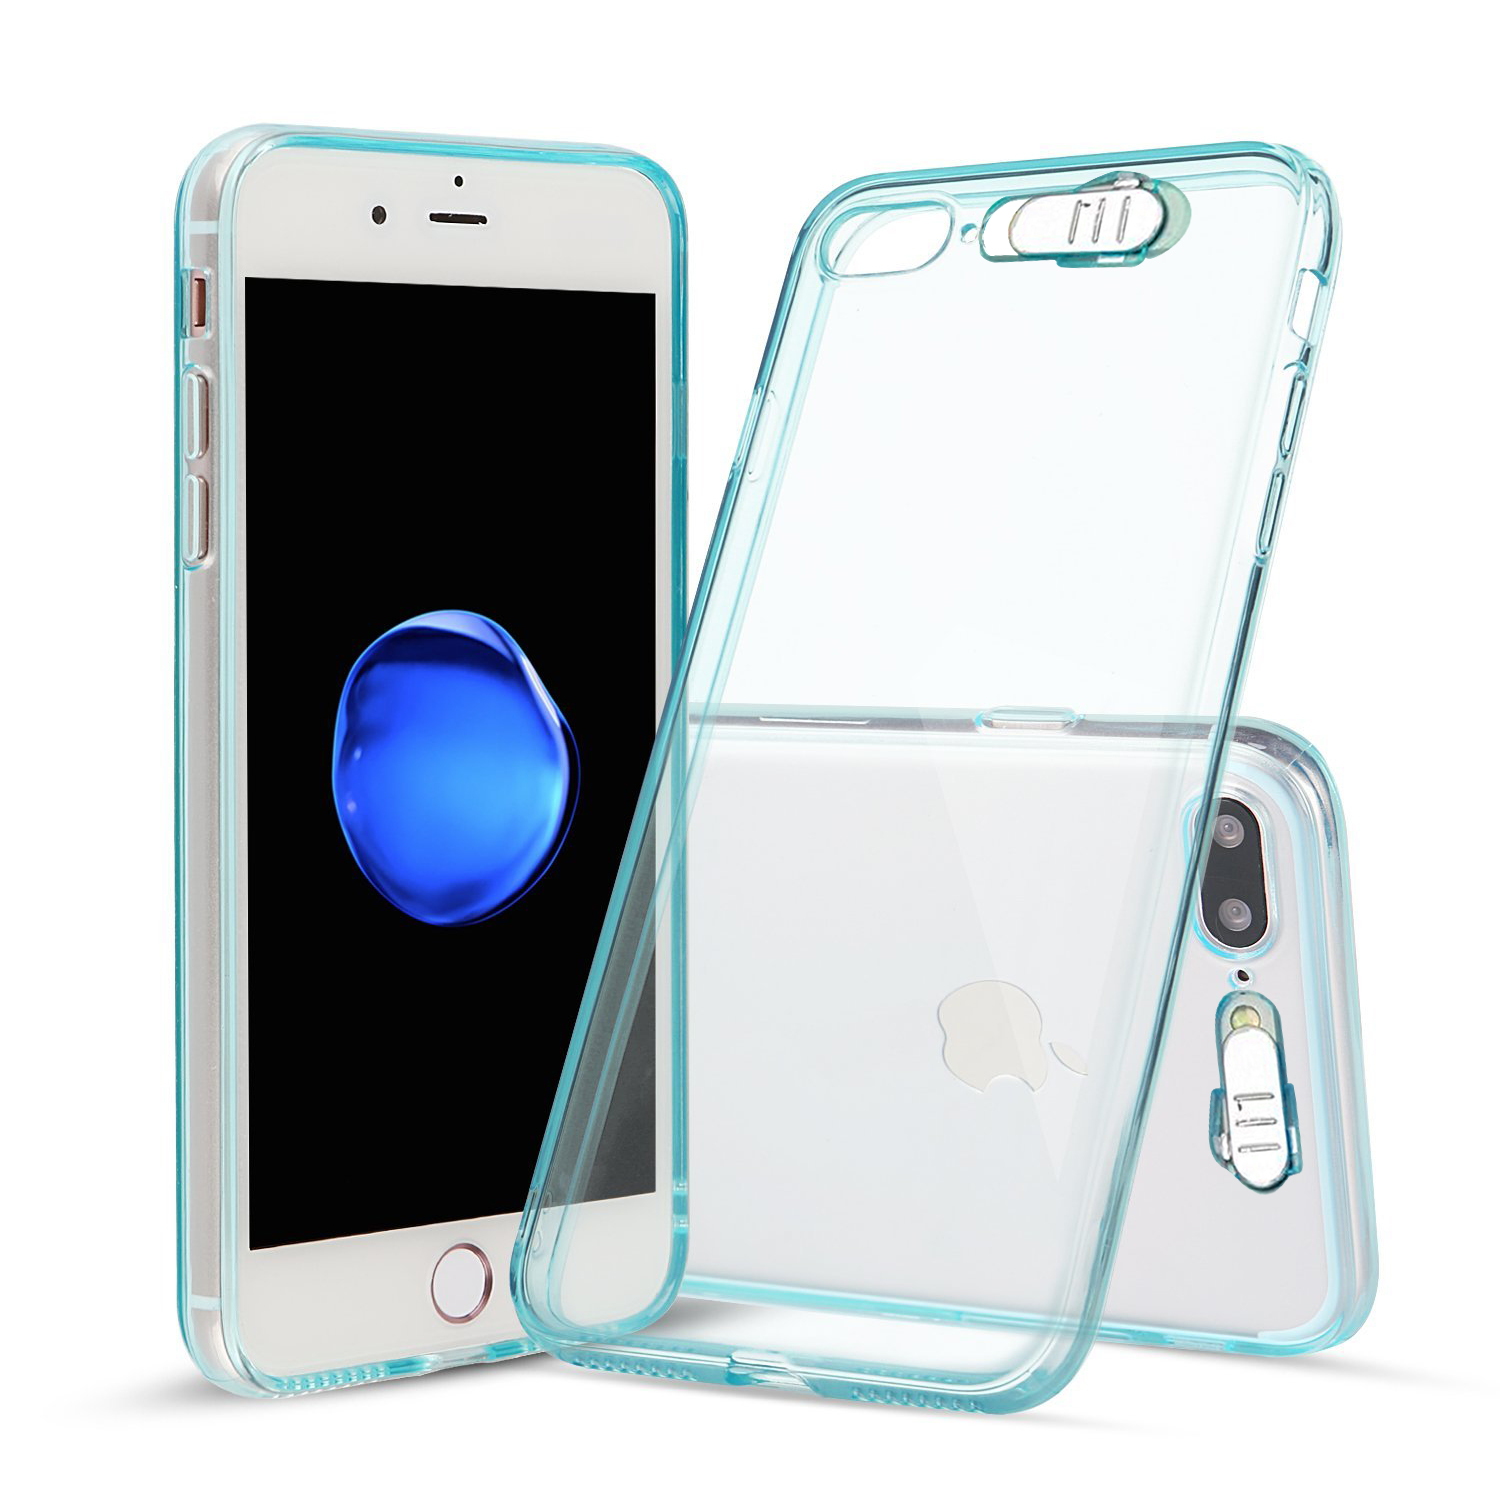 Made for Apple iPhone 8 Plus / 7 Plus / 6S Plus / 6 Plus LED TPU Case, [Blue] Slim Flexible Anti-shock [LED Light-Up Flashing] Crystal Silicone Protective TPU Gel Skin Case Cover by Redshield